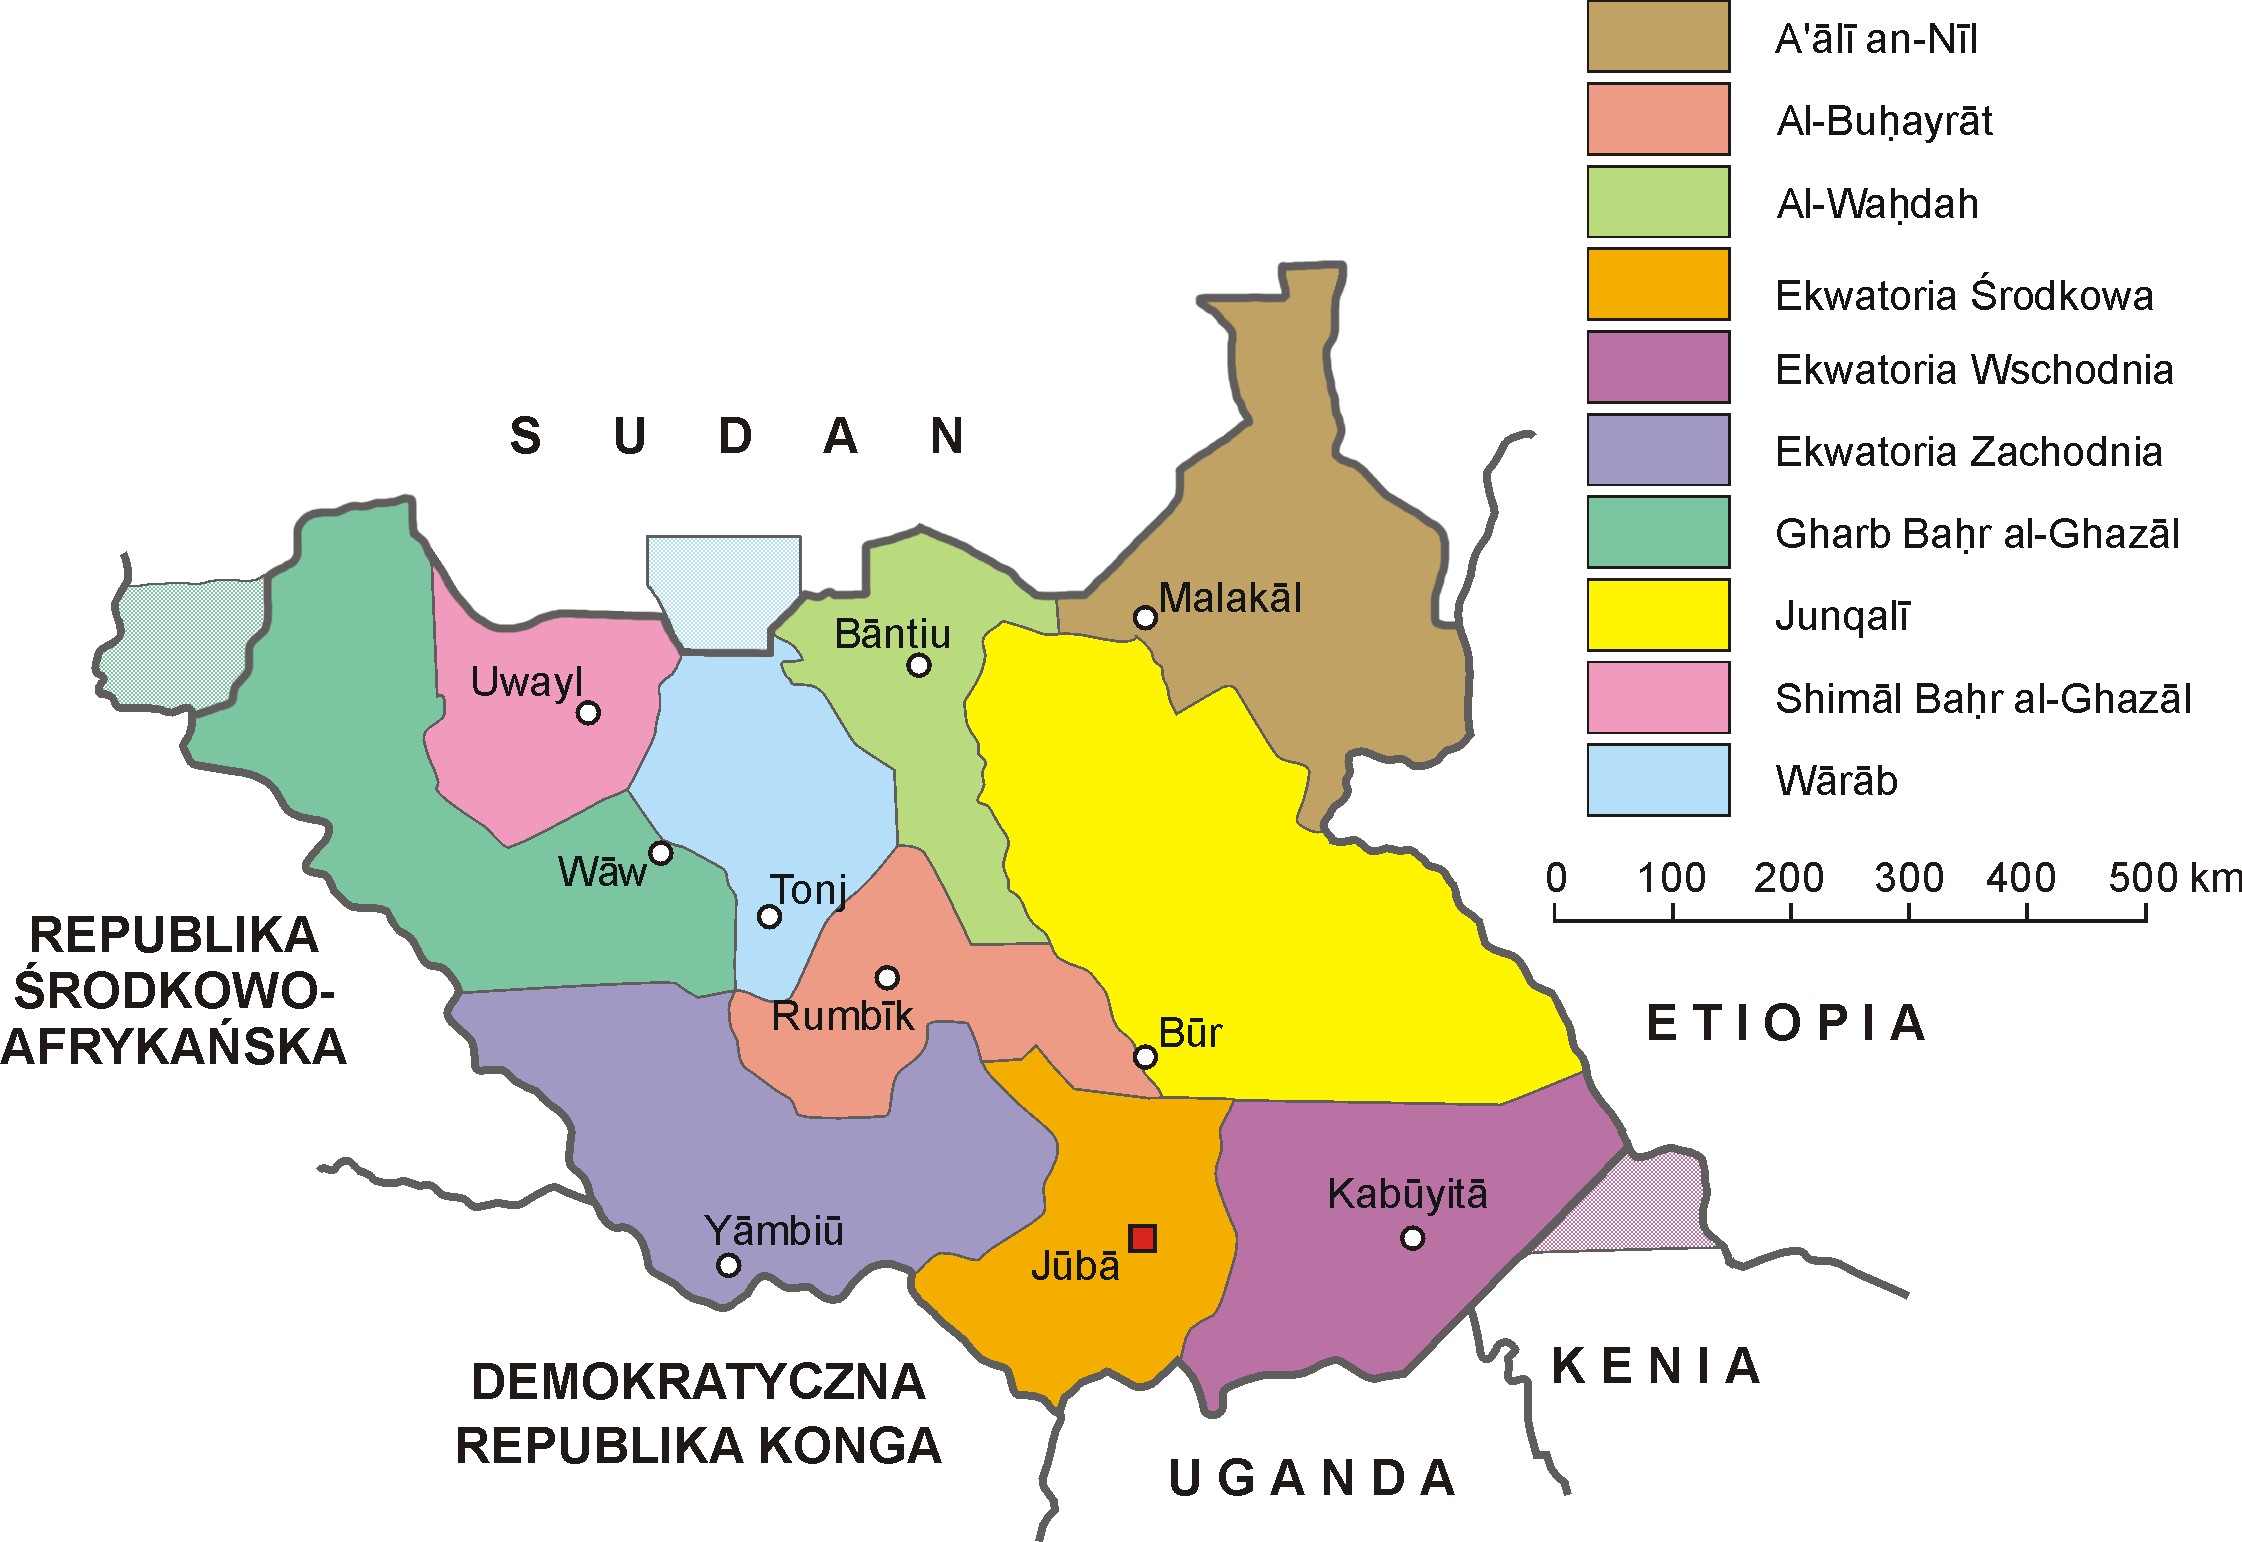 http://upload.wikimedia.org/wikipedia/commons/d/d4/South_Sudan-administrative_map_PL.png